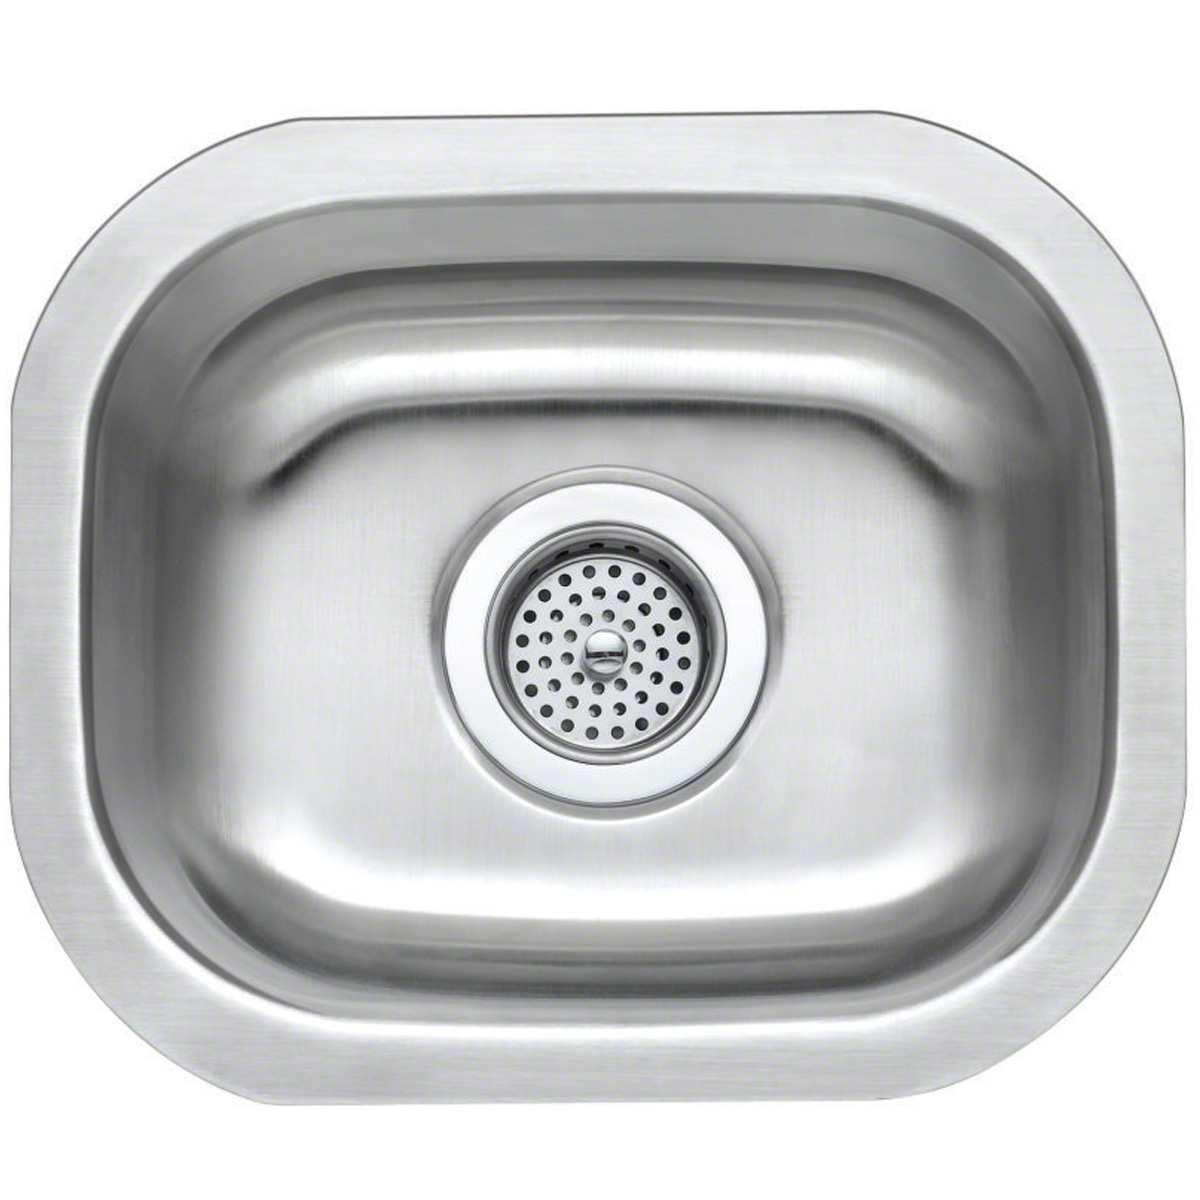 Stainless Steele Sink